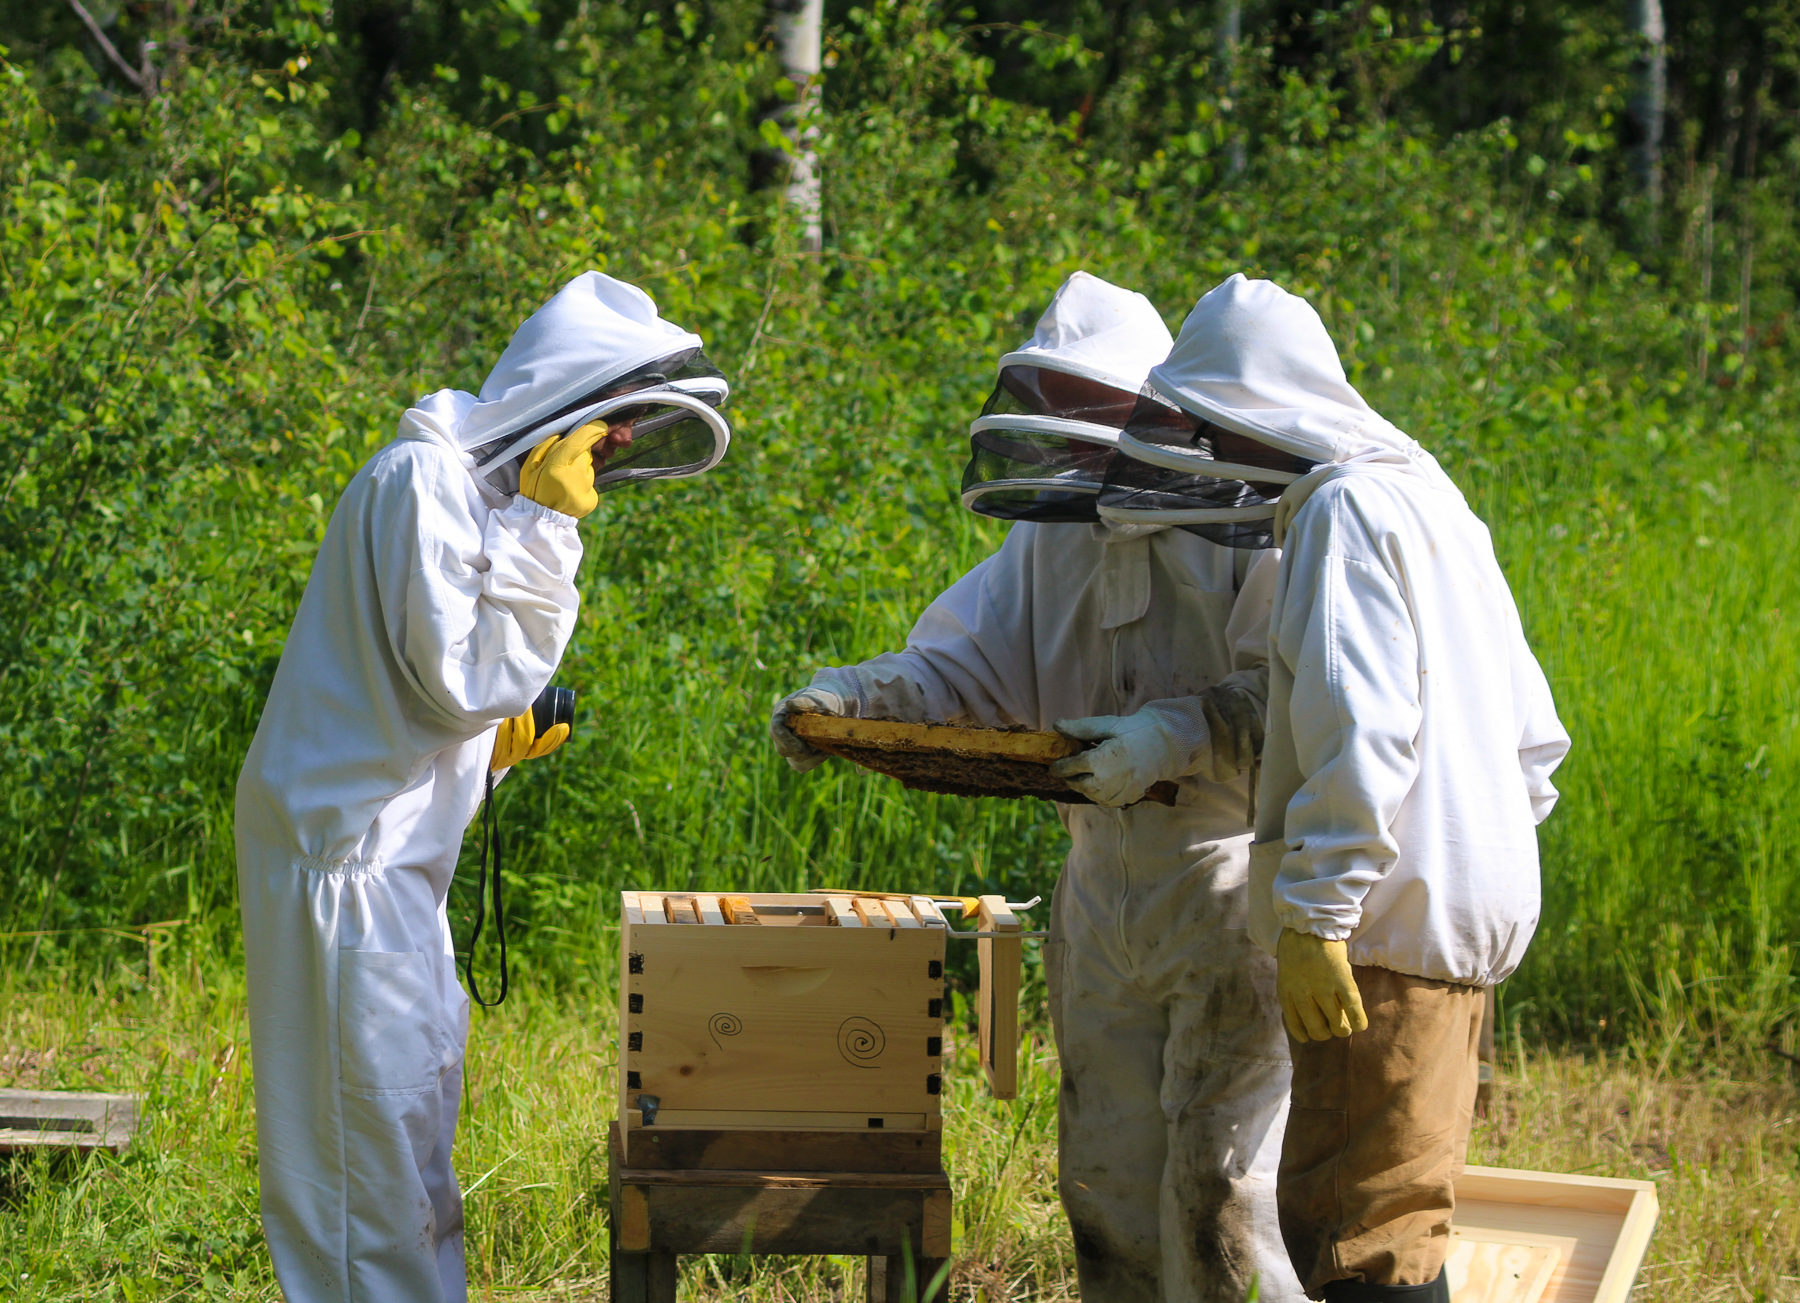 That's me on the left in the bee suit. Together with Guy and Paul I'm looking for the queen. Photo: Nadine Fletcher